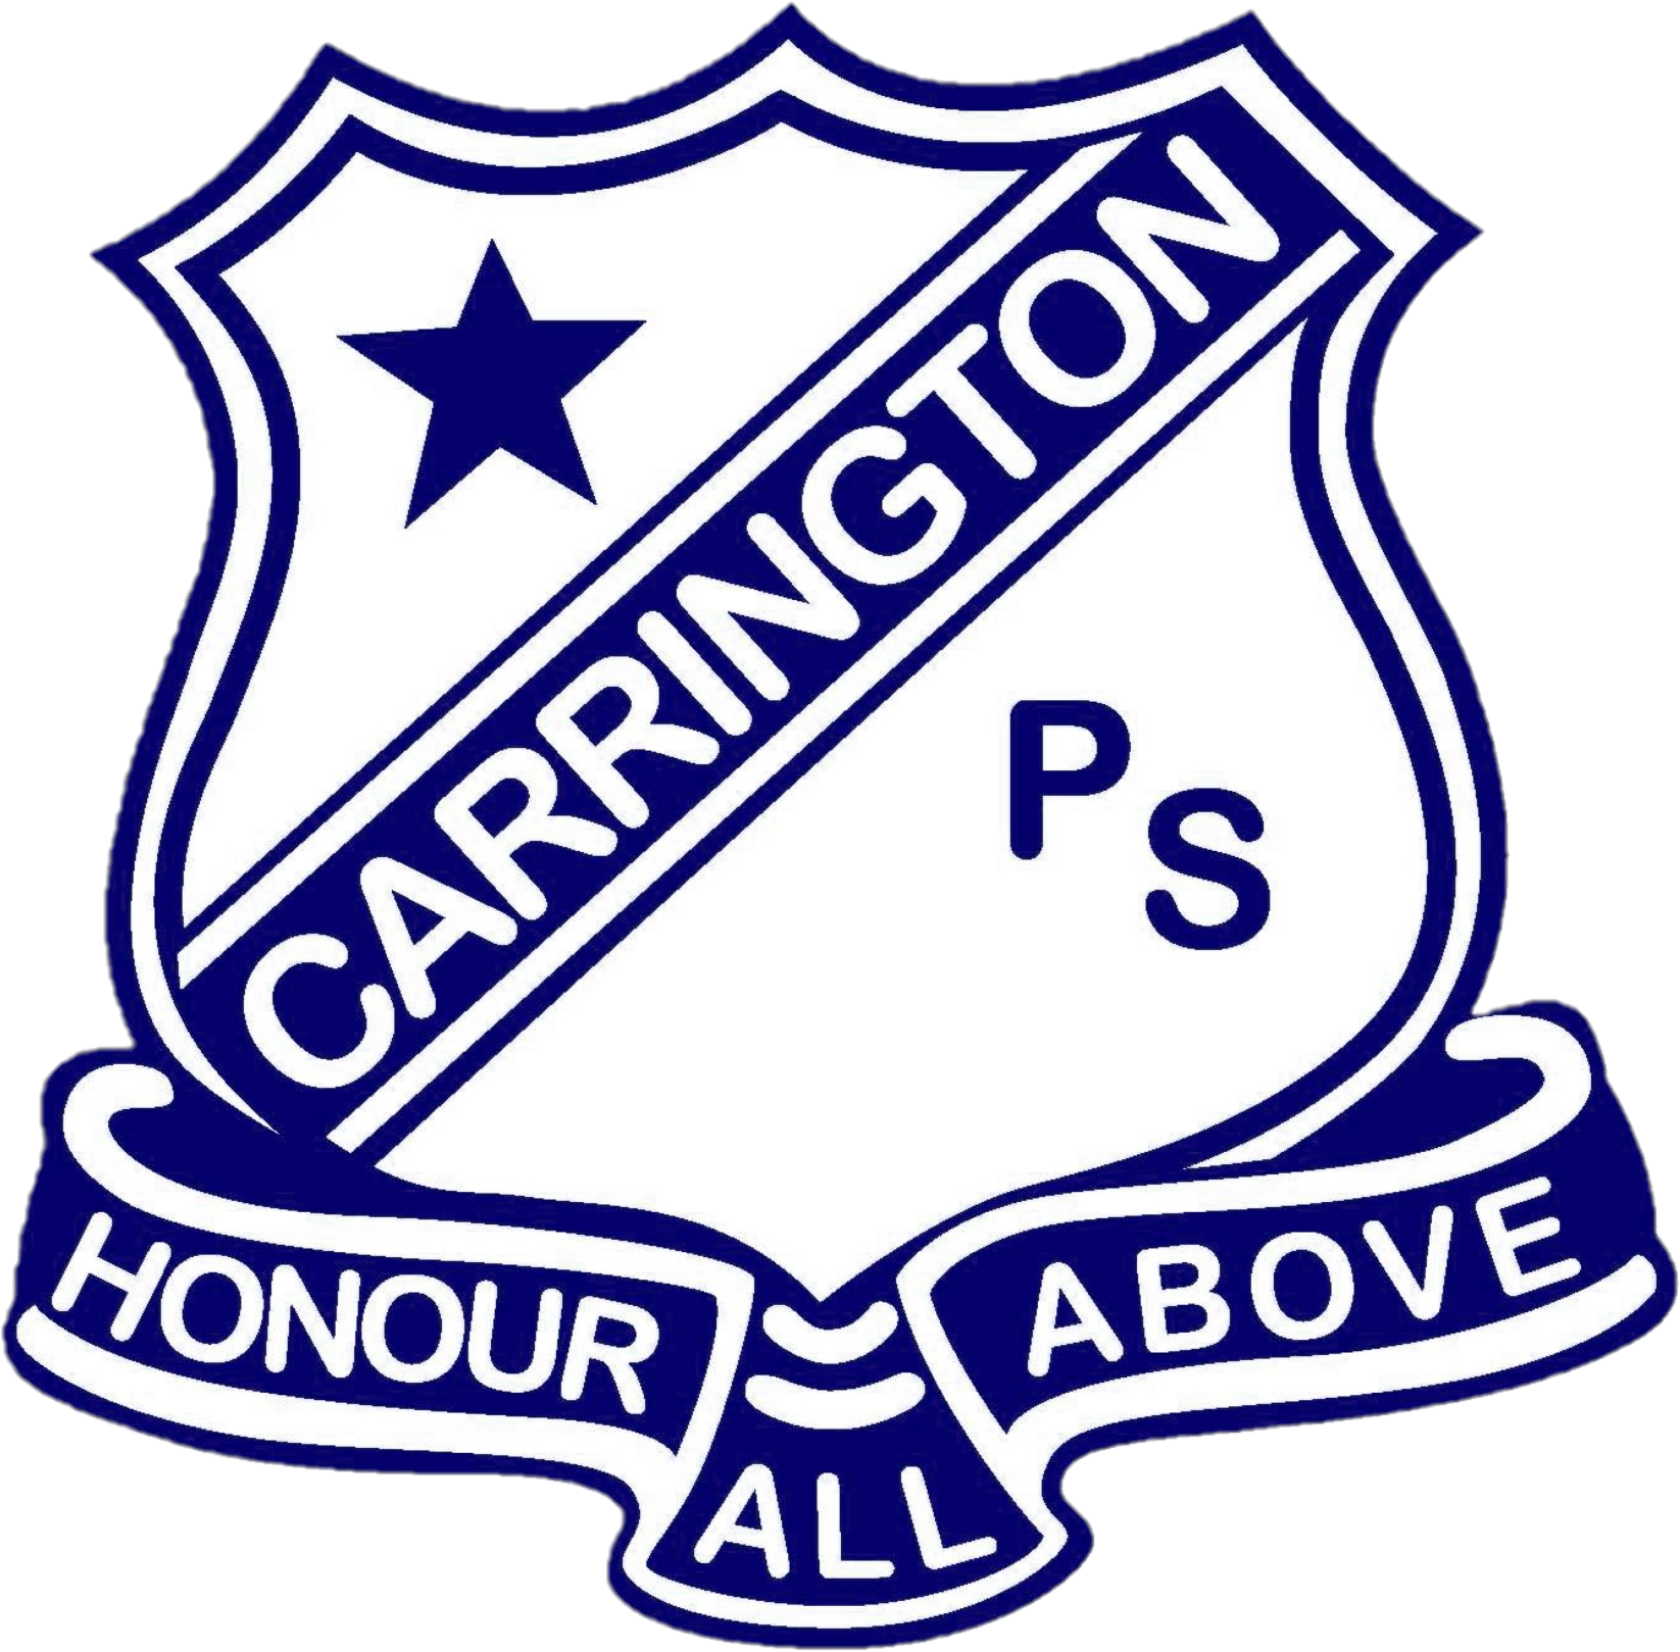 Carrington Public School logo